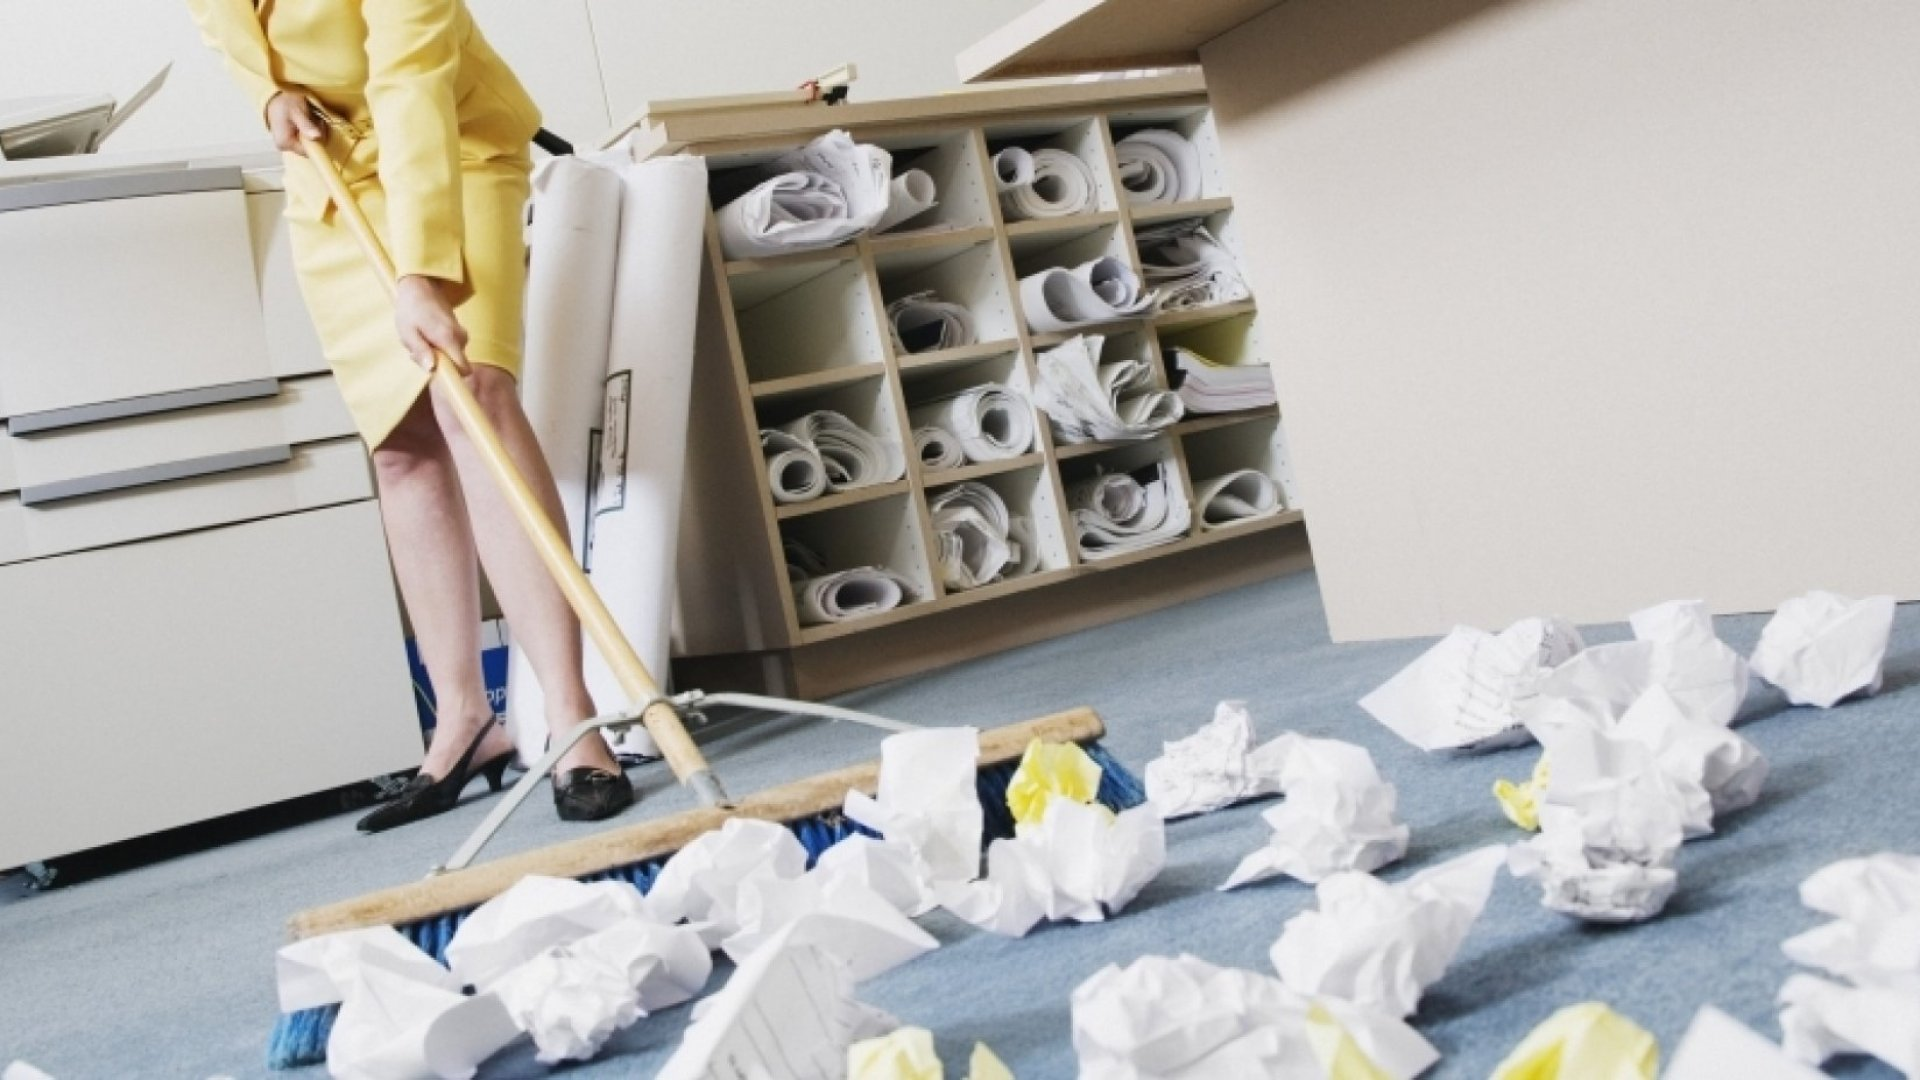 Is It Time to Spring Clean Your Business? Here's How to Do It